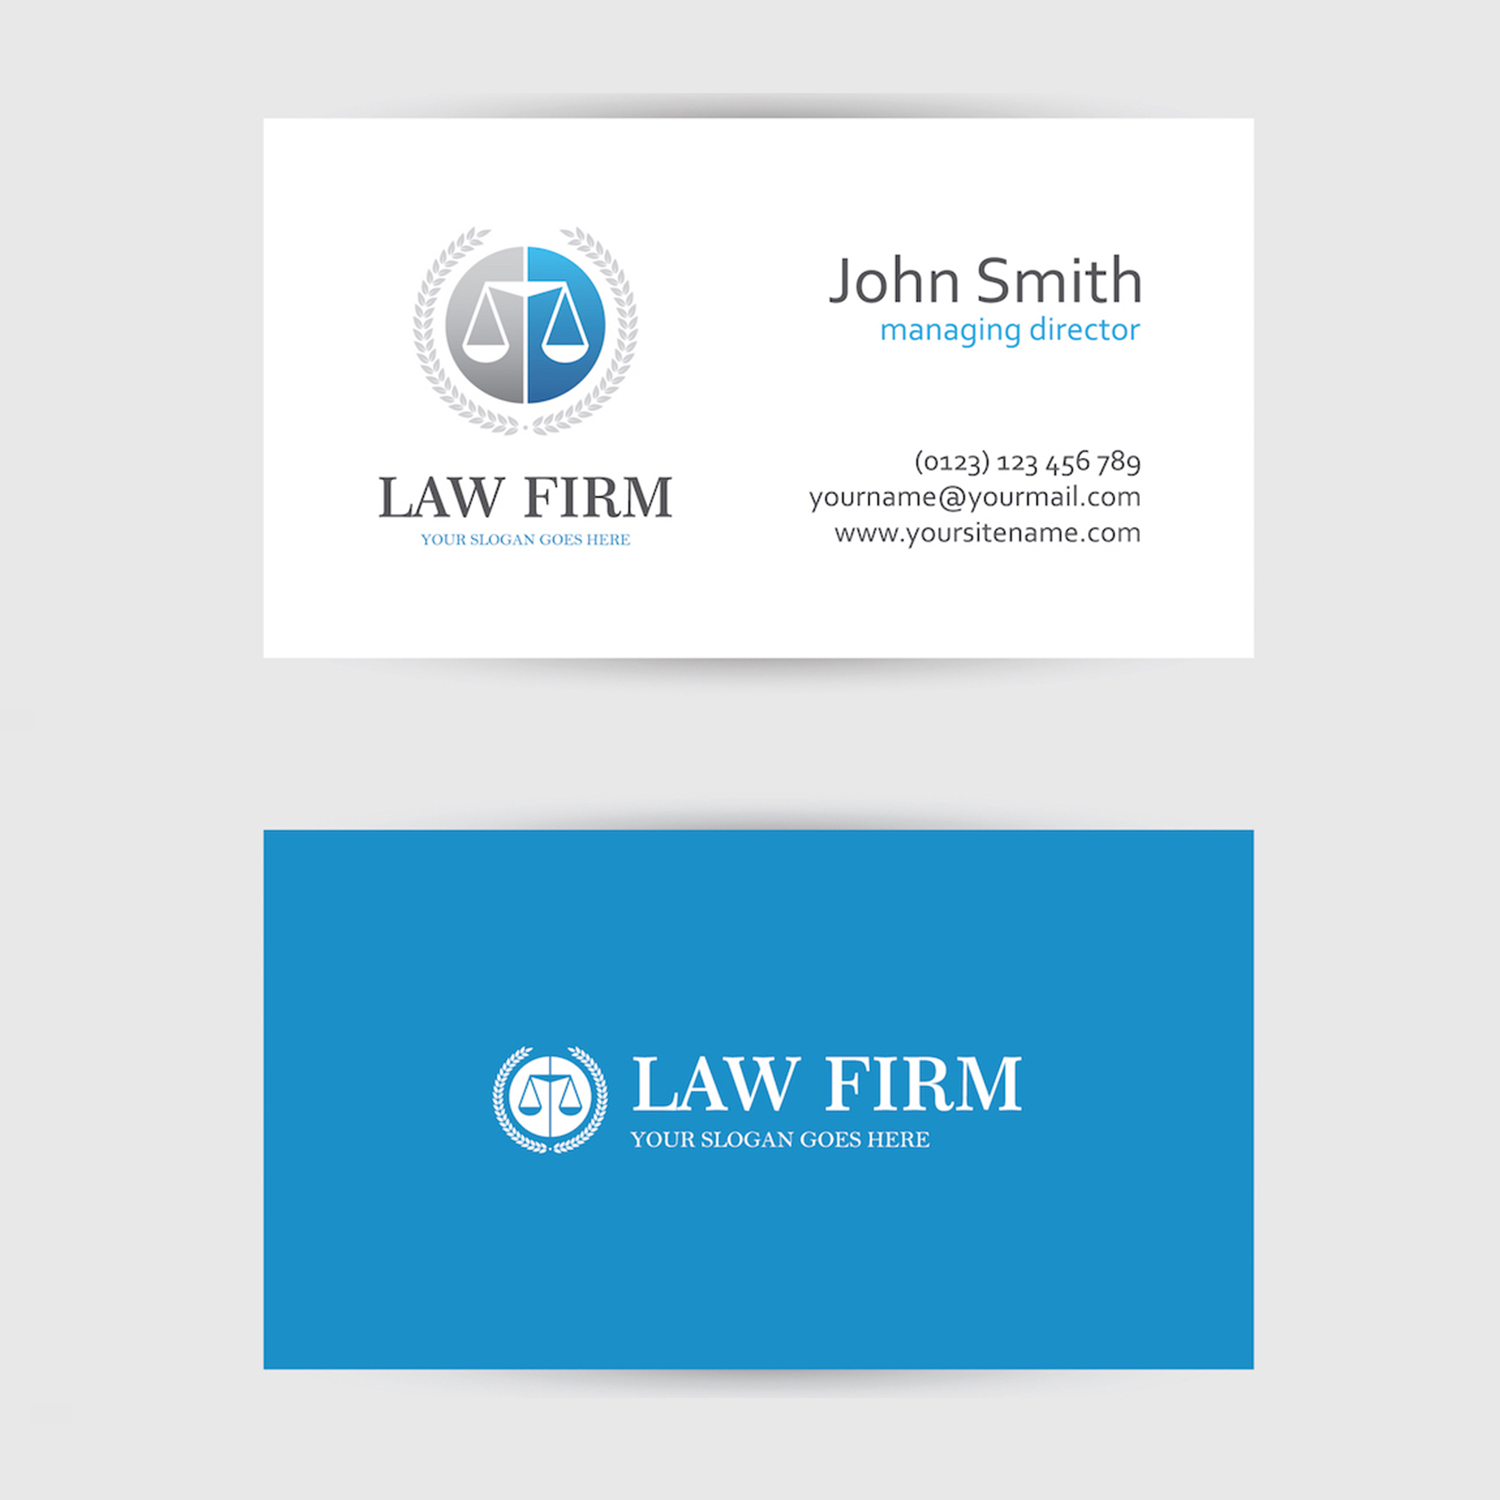 Law firm business card design branding los angeles law firm business card design colourmoves Choice Image